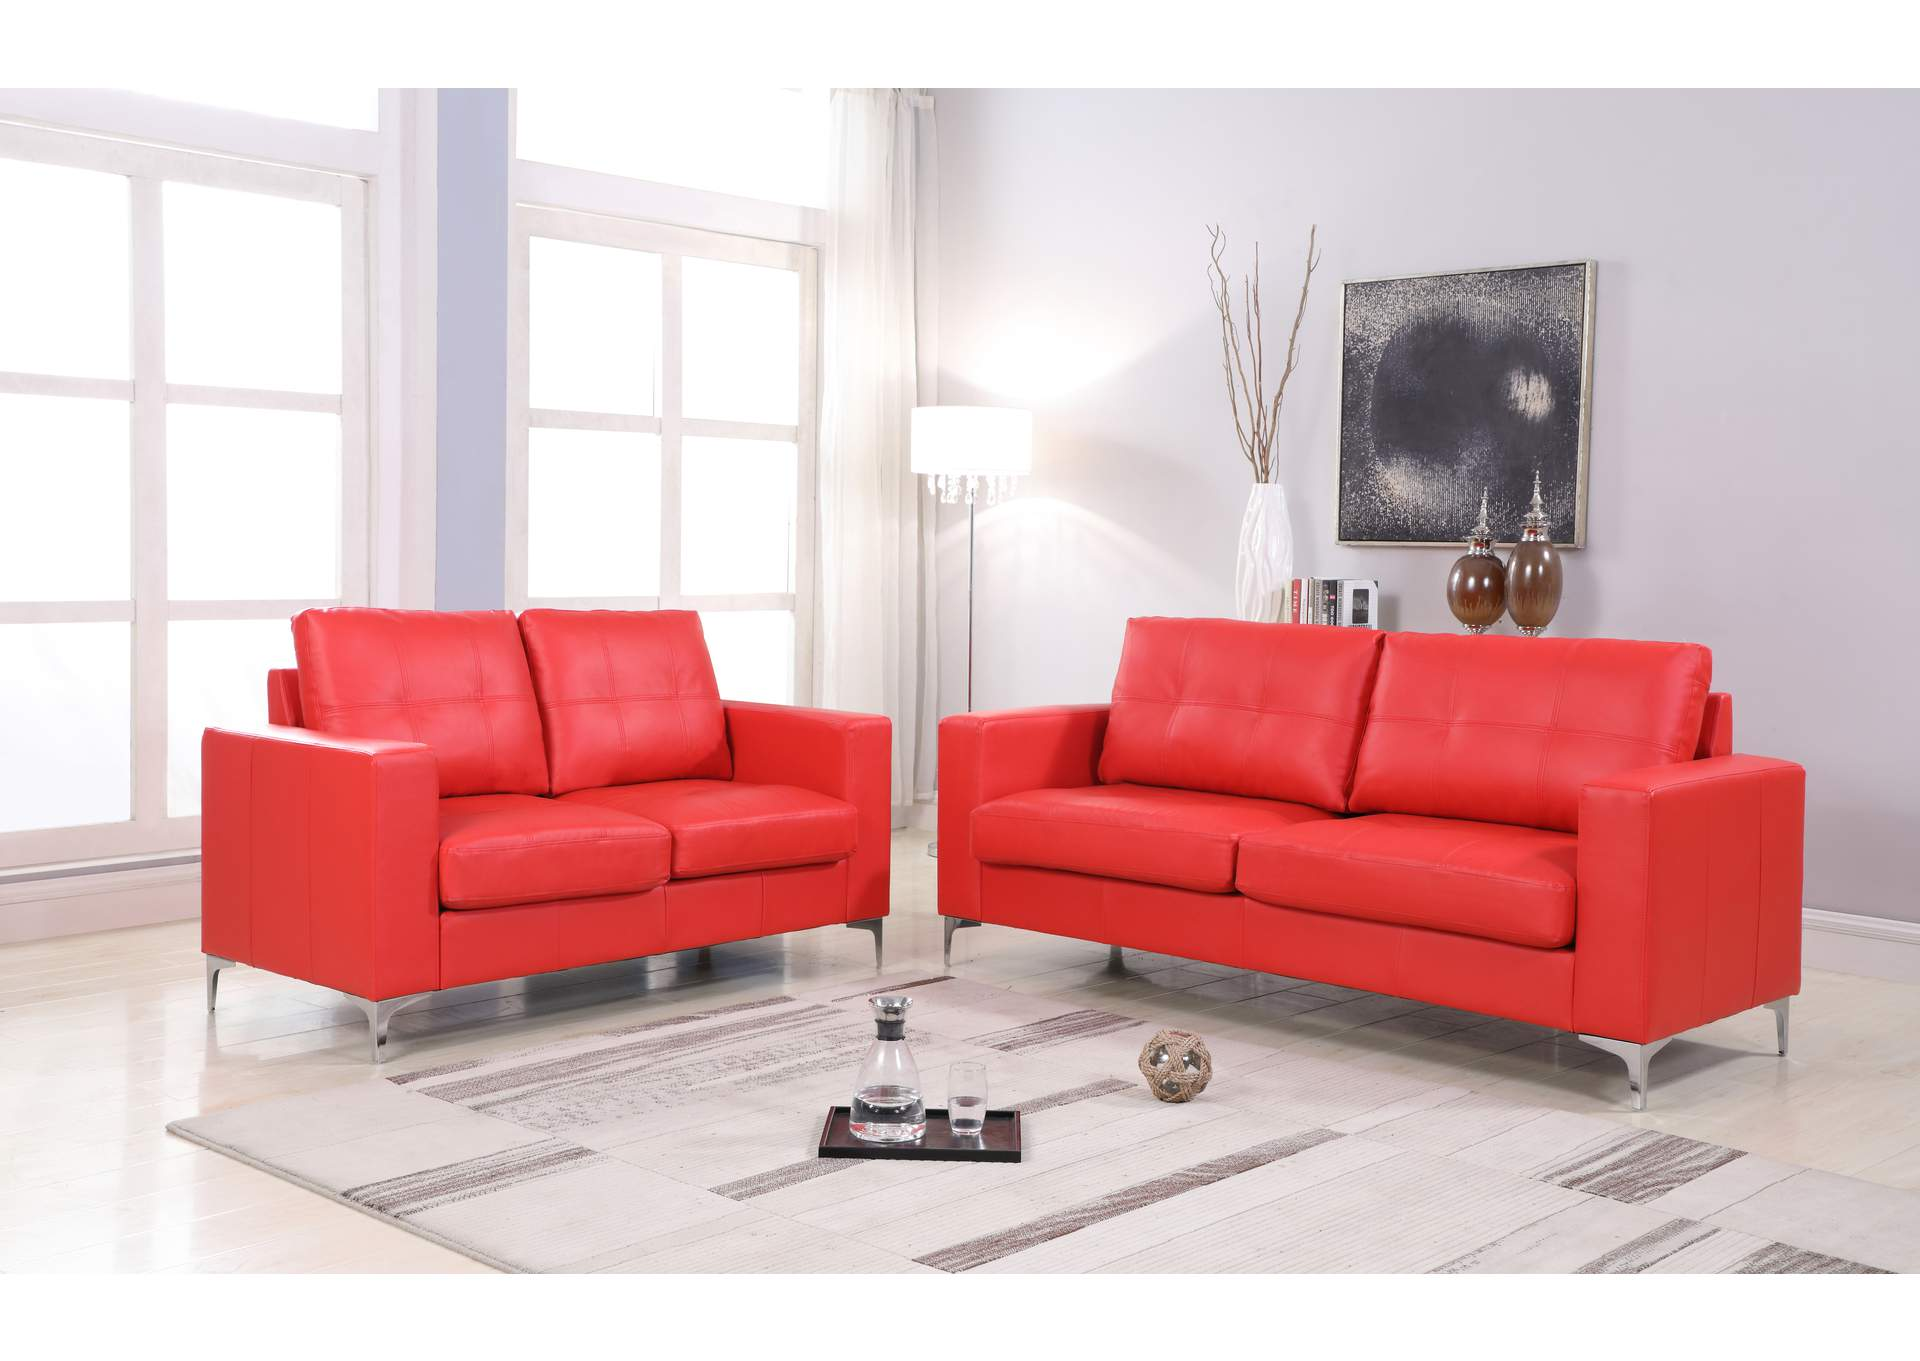 Red Sofa & Loveseat With Chrome Leg,Global Trading